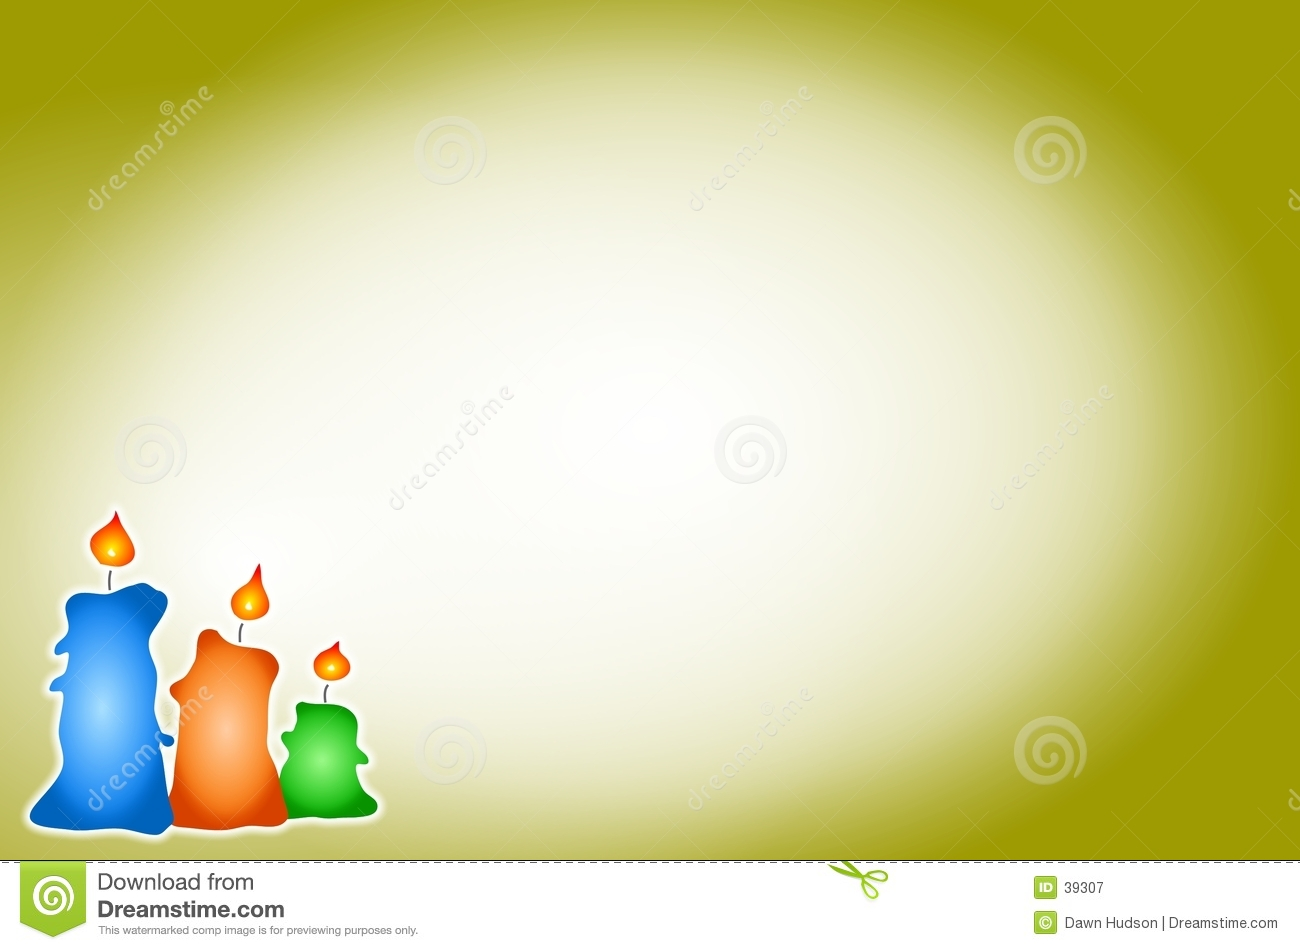 Background candles